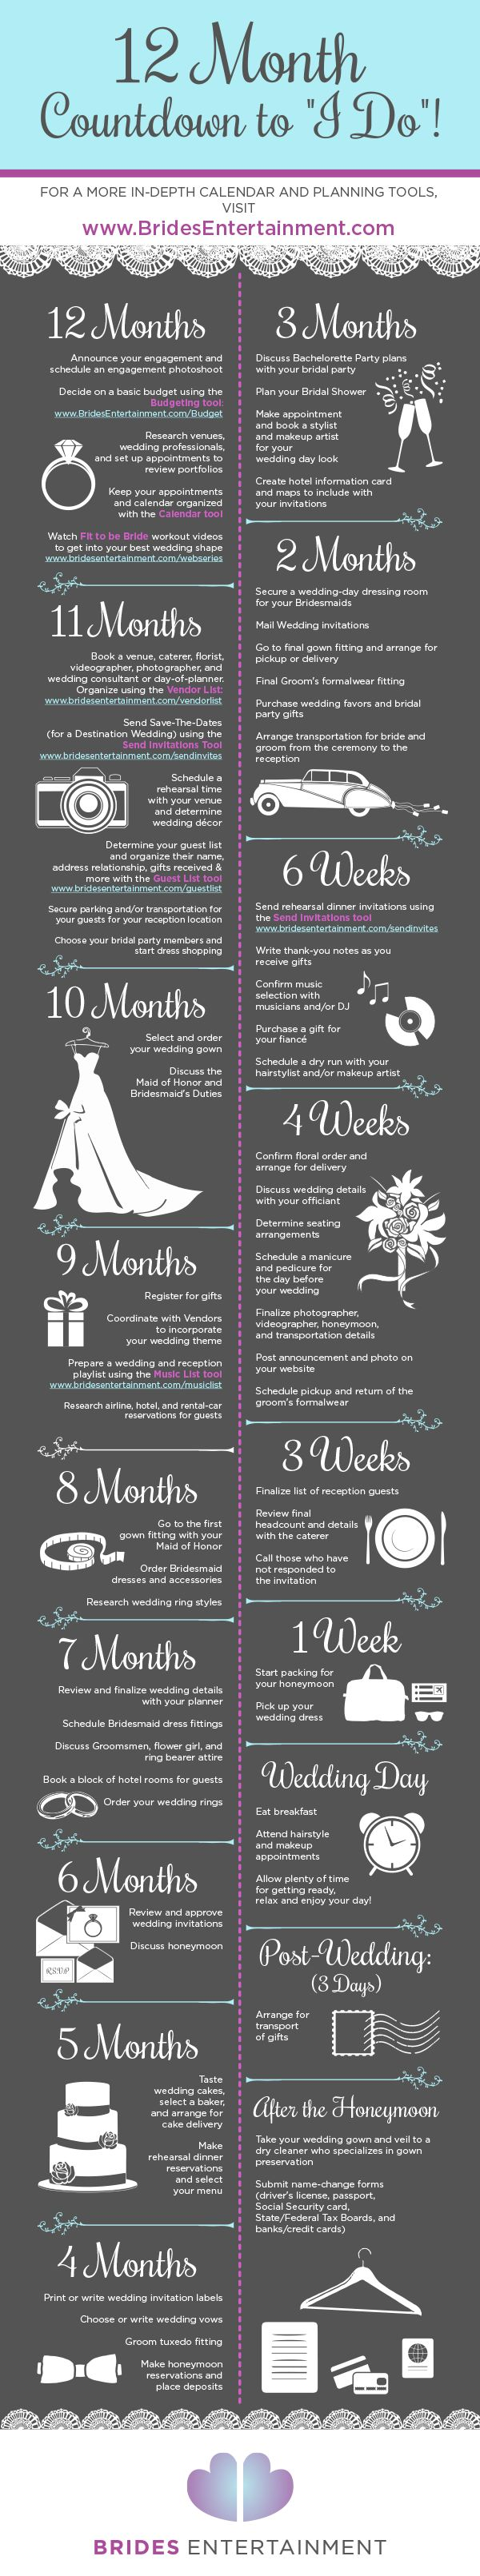 52 best Brides Entertainment Planning Tools images on Pinterest